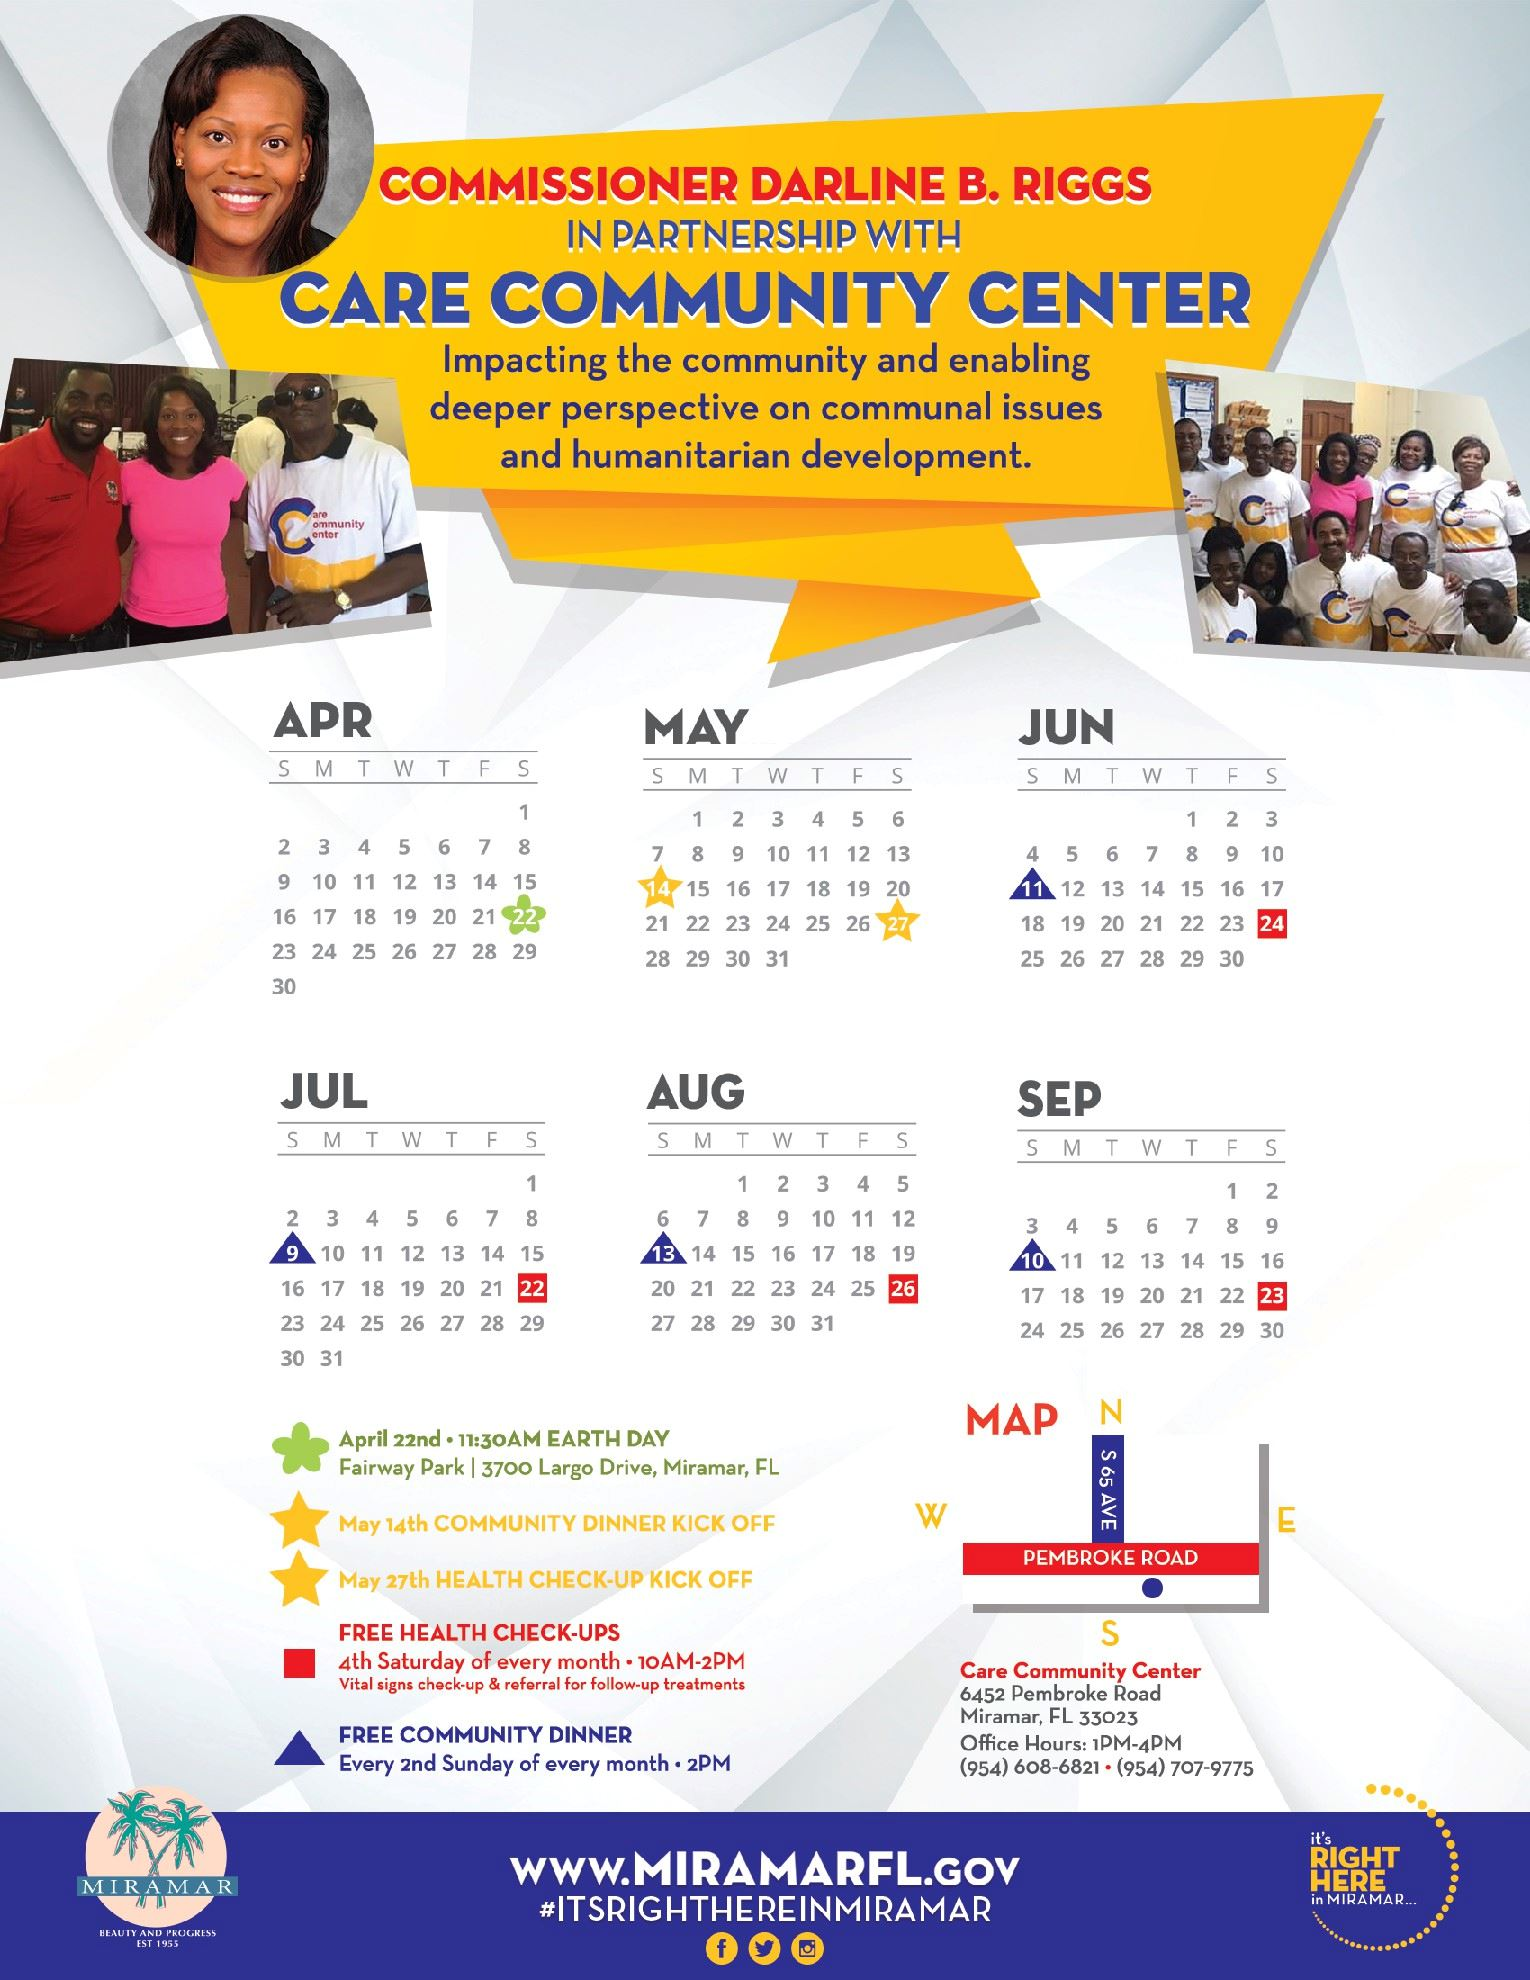 Care Community Center in Partnership with Commissioner Darline B. Riggs